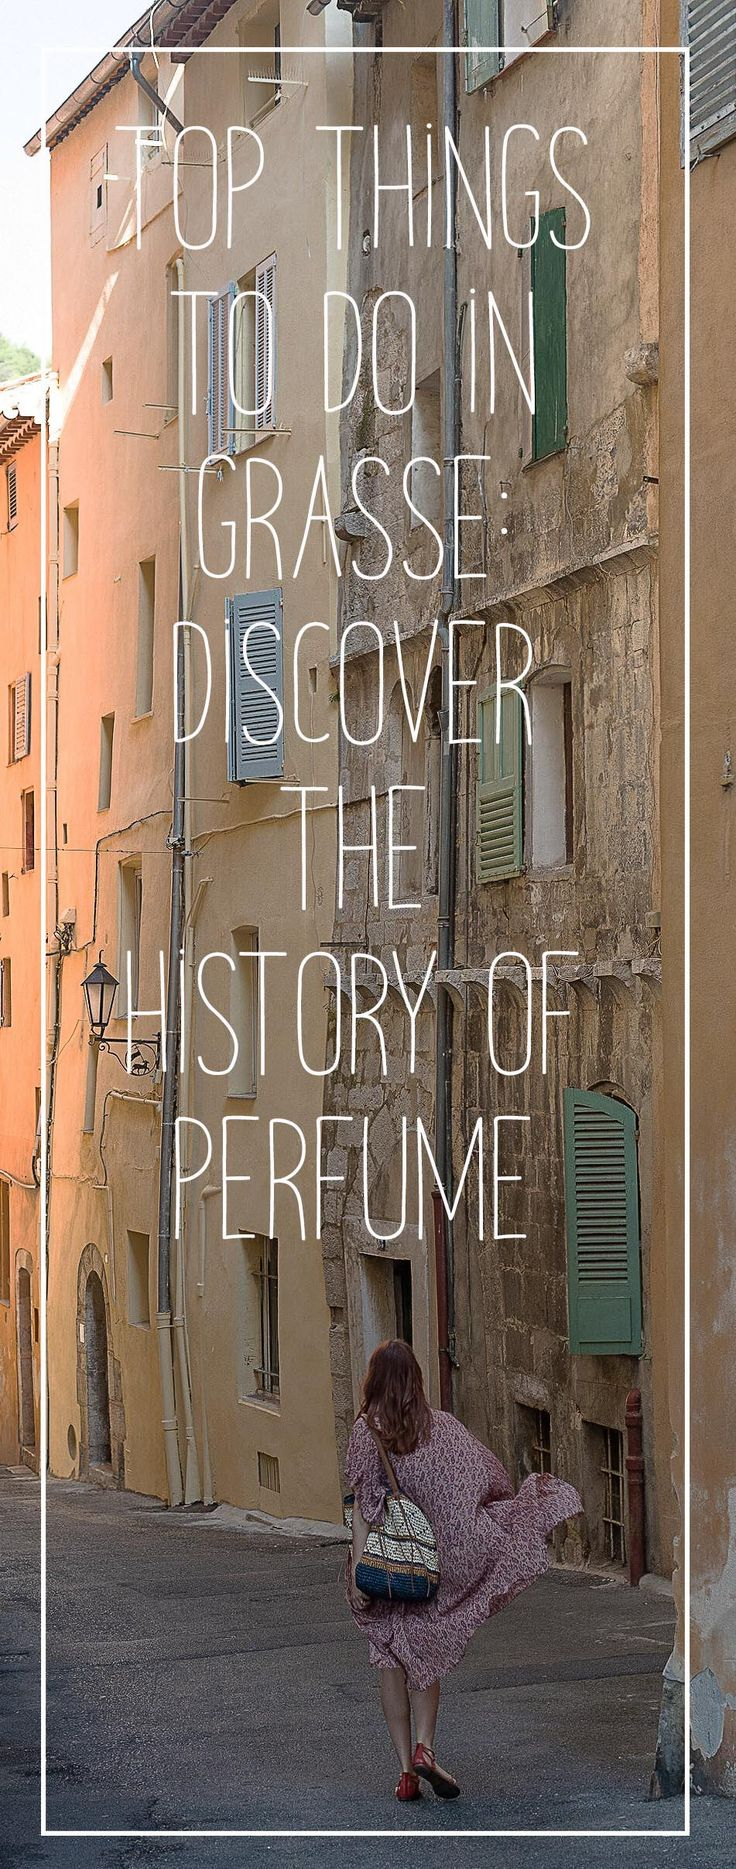 discover the history of perfume in Grasse, French Riviera, Cote d'Azur, Provence